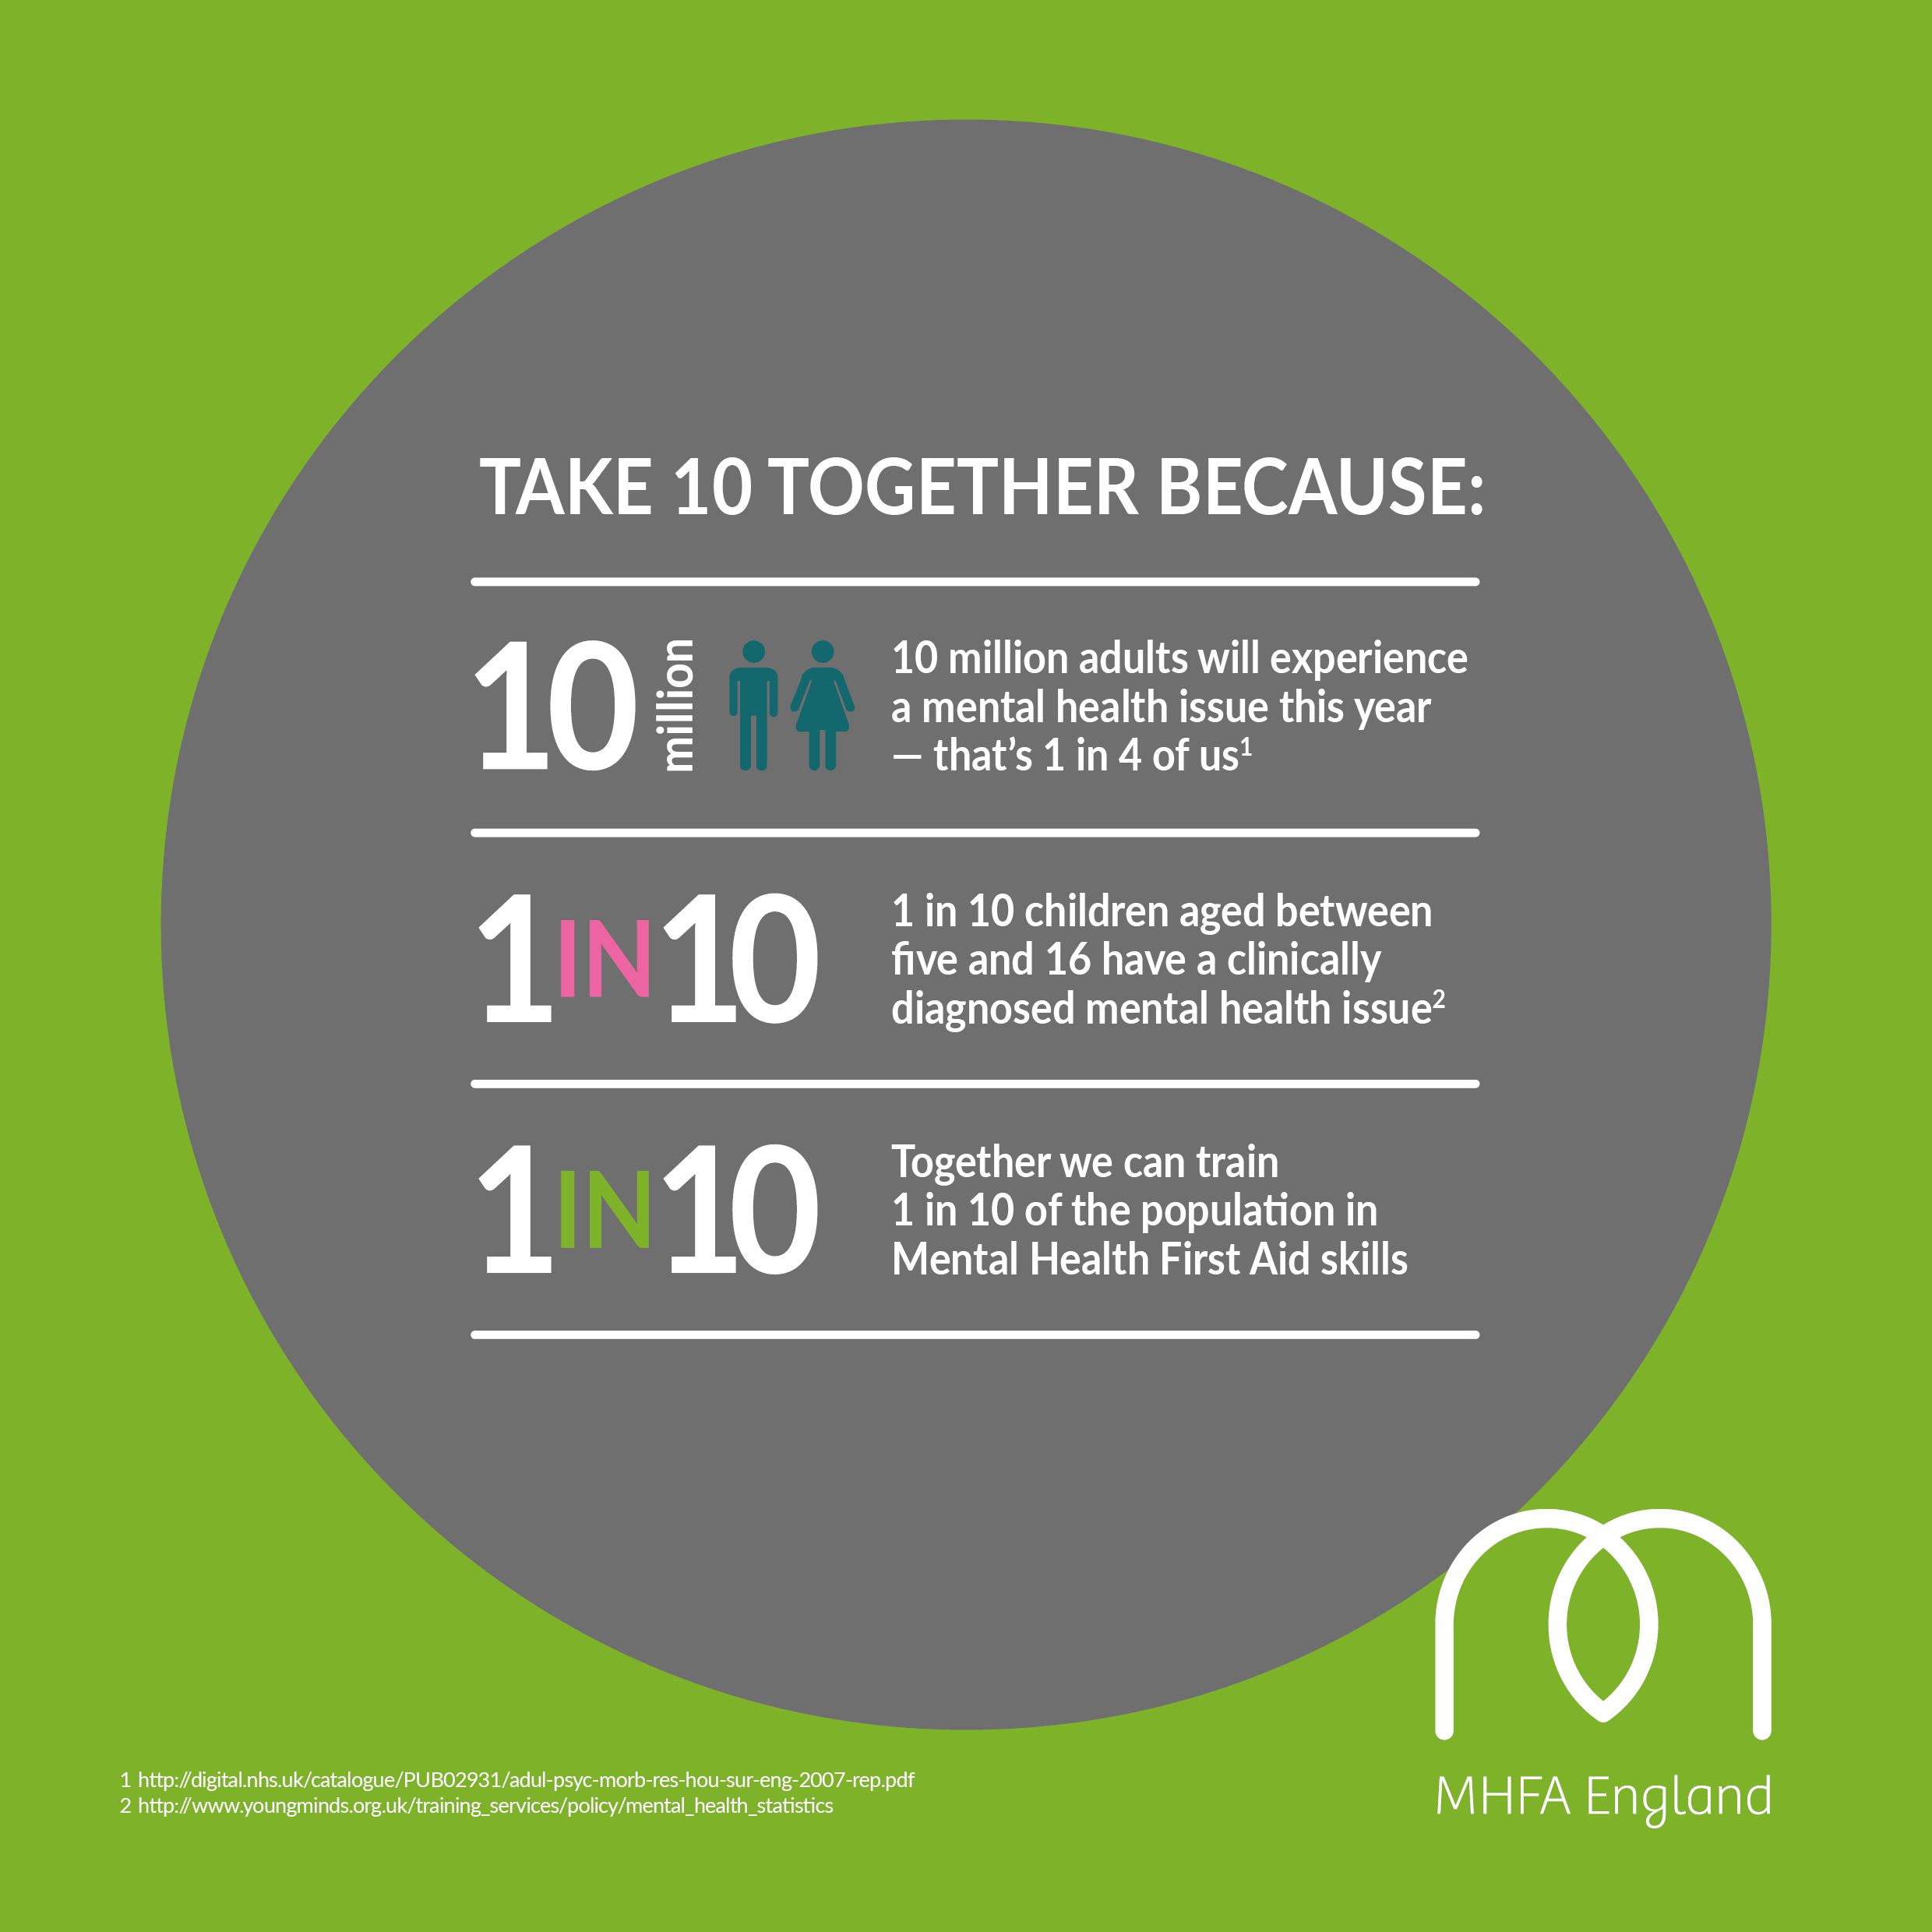 Physical Teams Give Us Problems: A Round Up Of The MHFA England Take 10 Together Campaign